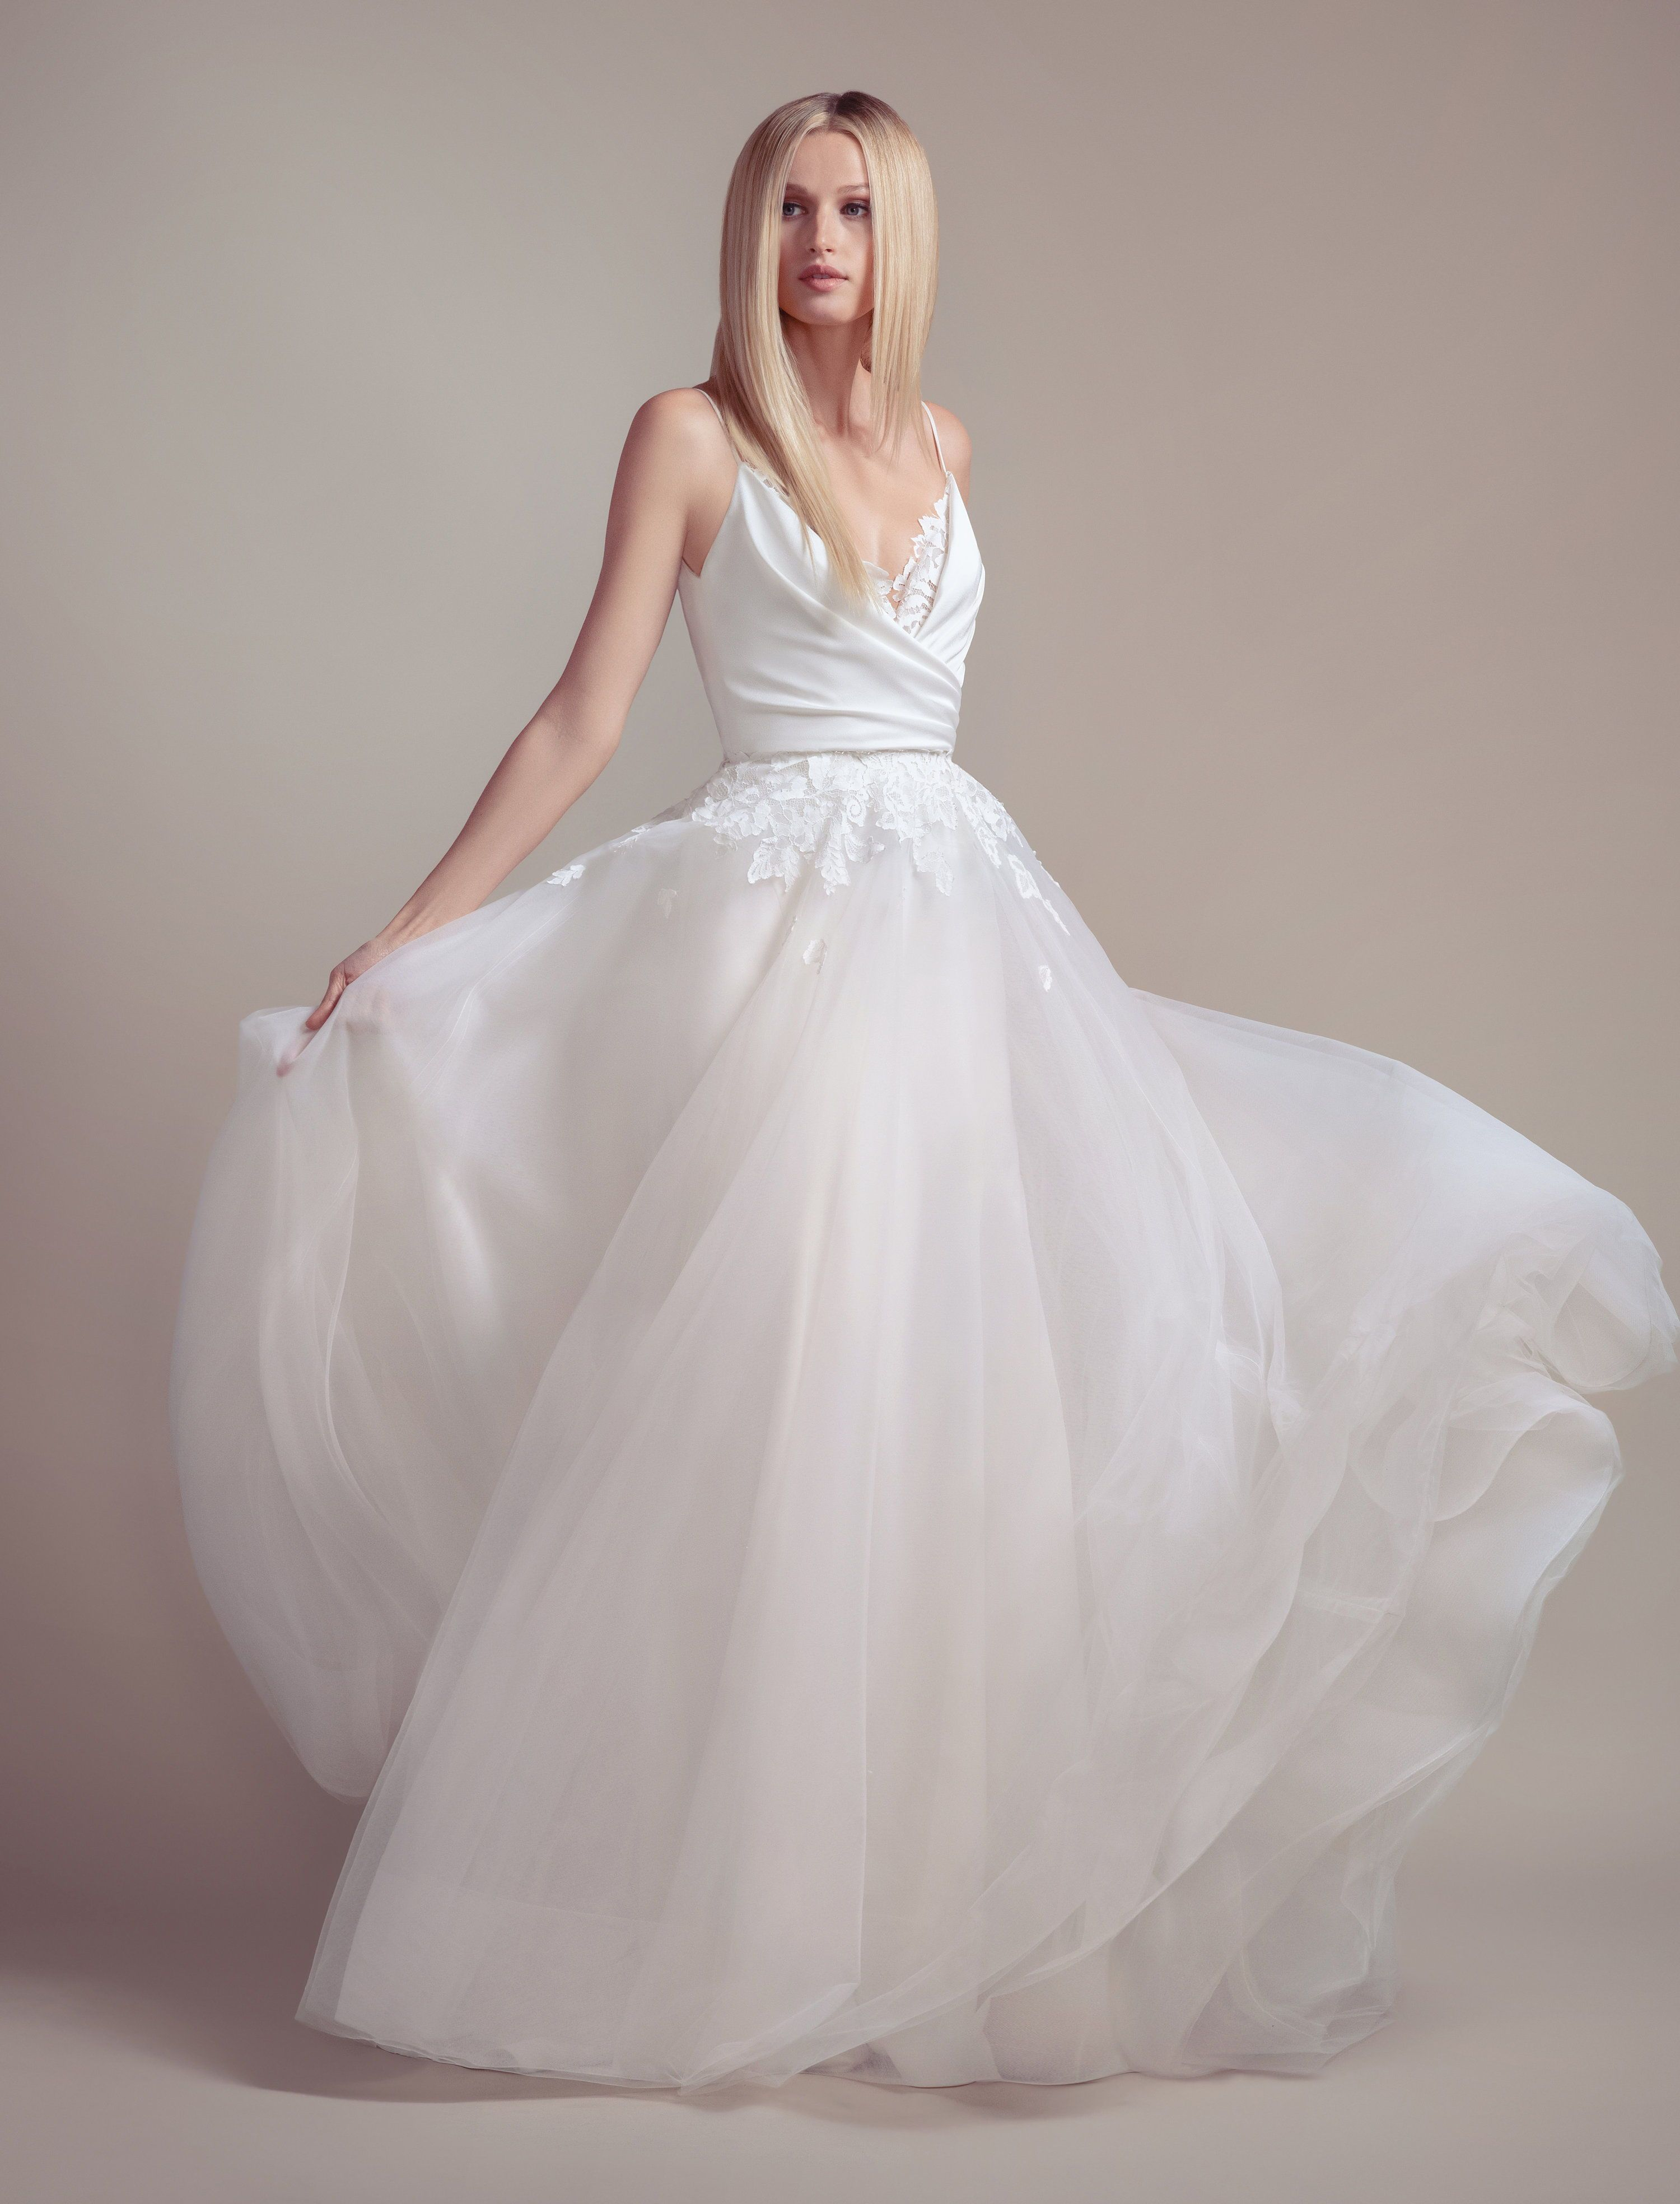 Fawn By Blush By Hayley Paige Spring 2019 Collection Blush By Hayley Paige Wedding Dresses 20 Classic Wedding Gowns Spring Wedding Dress Ball Gowns Wedding